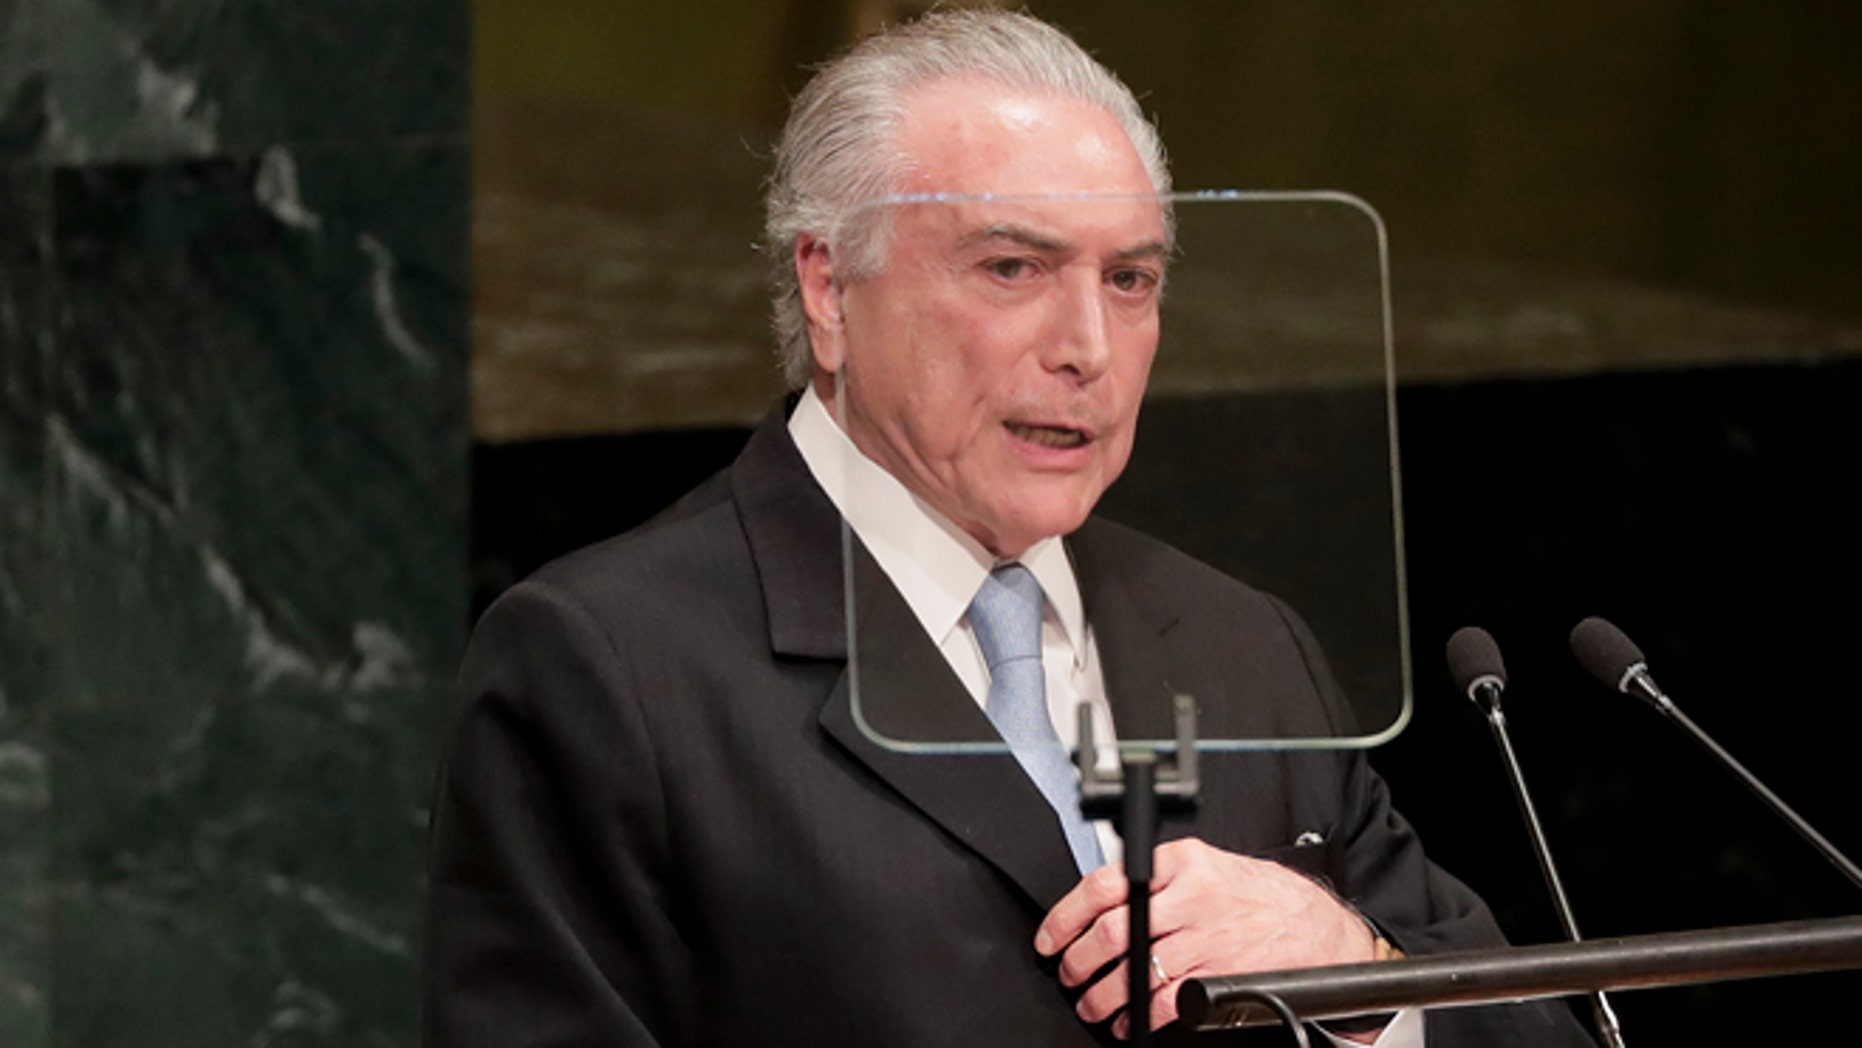 Michel Temer, President of Brazil, during the United Nations General Assembly, Tuesday, Sept. 20, 2016.